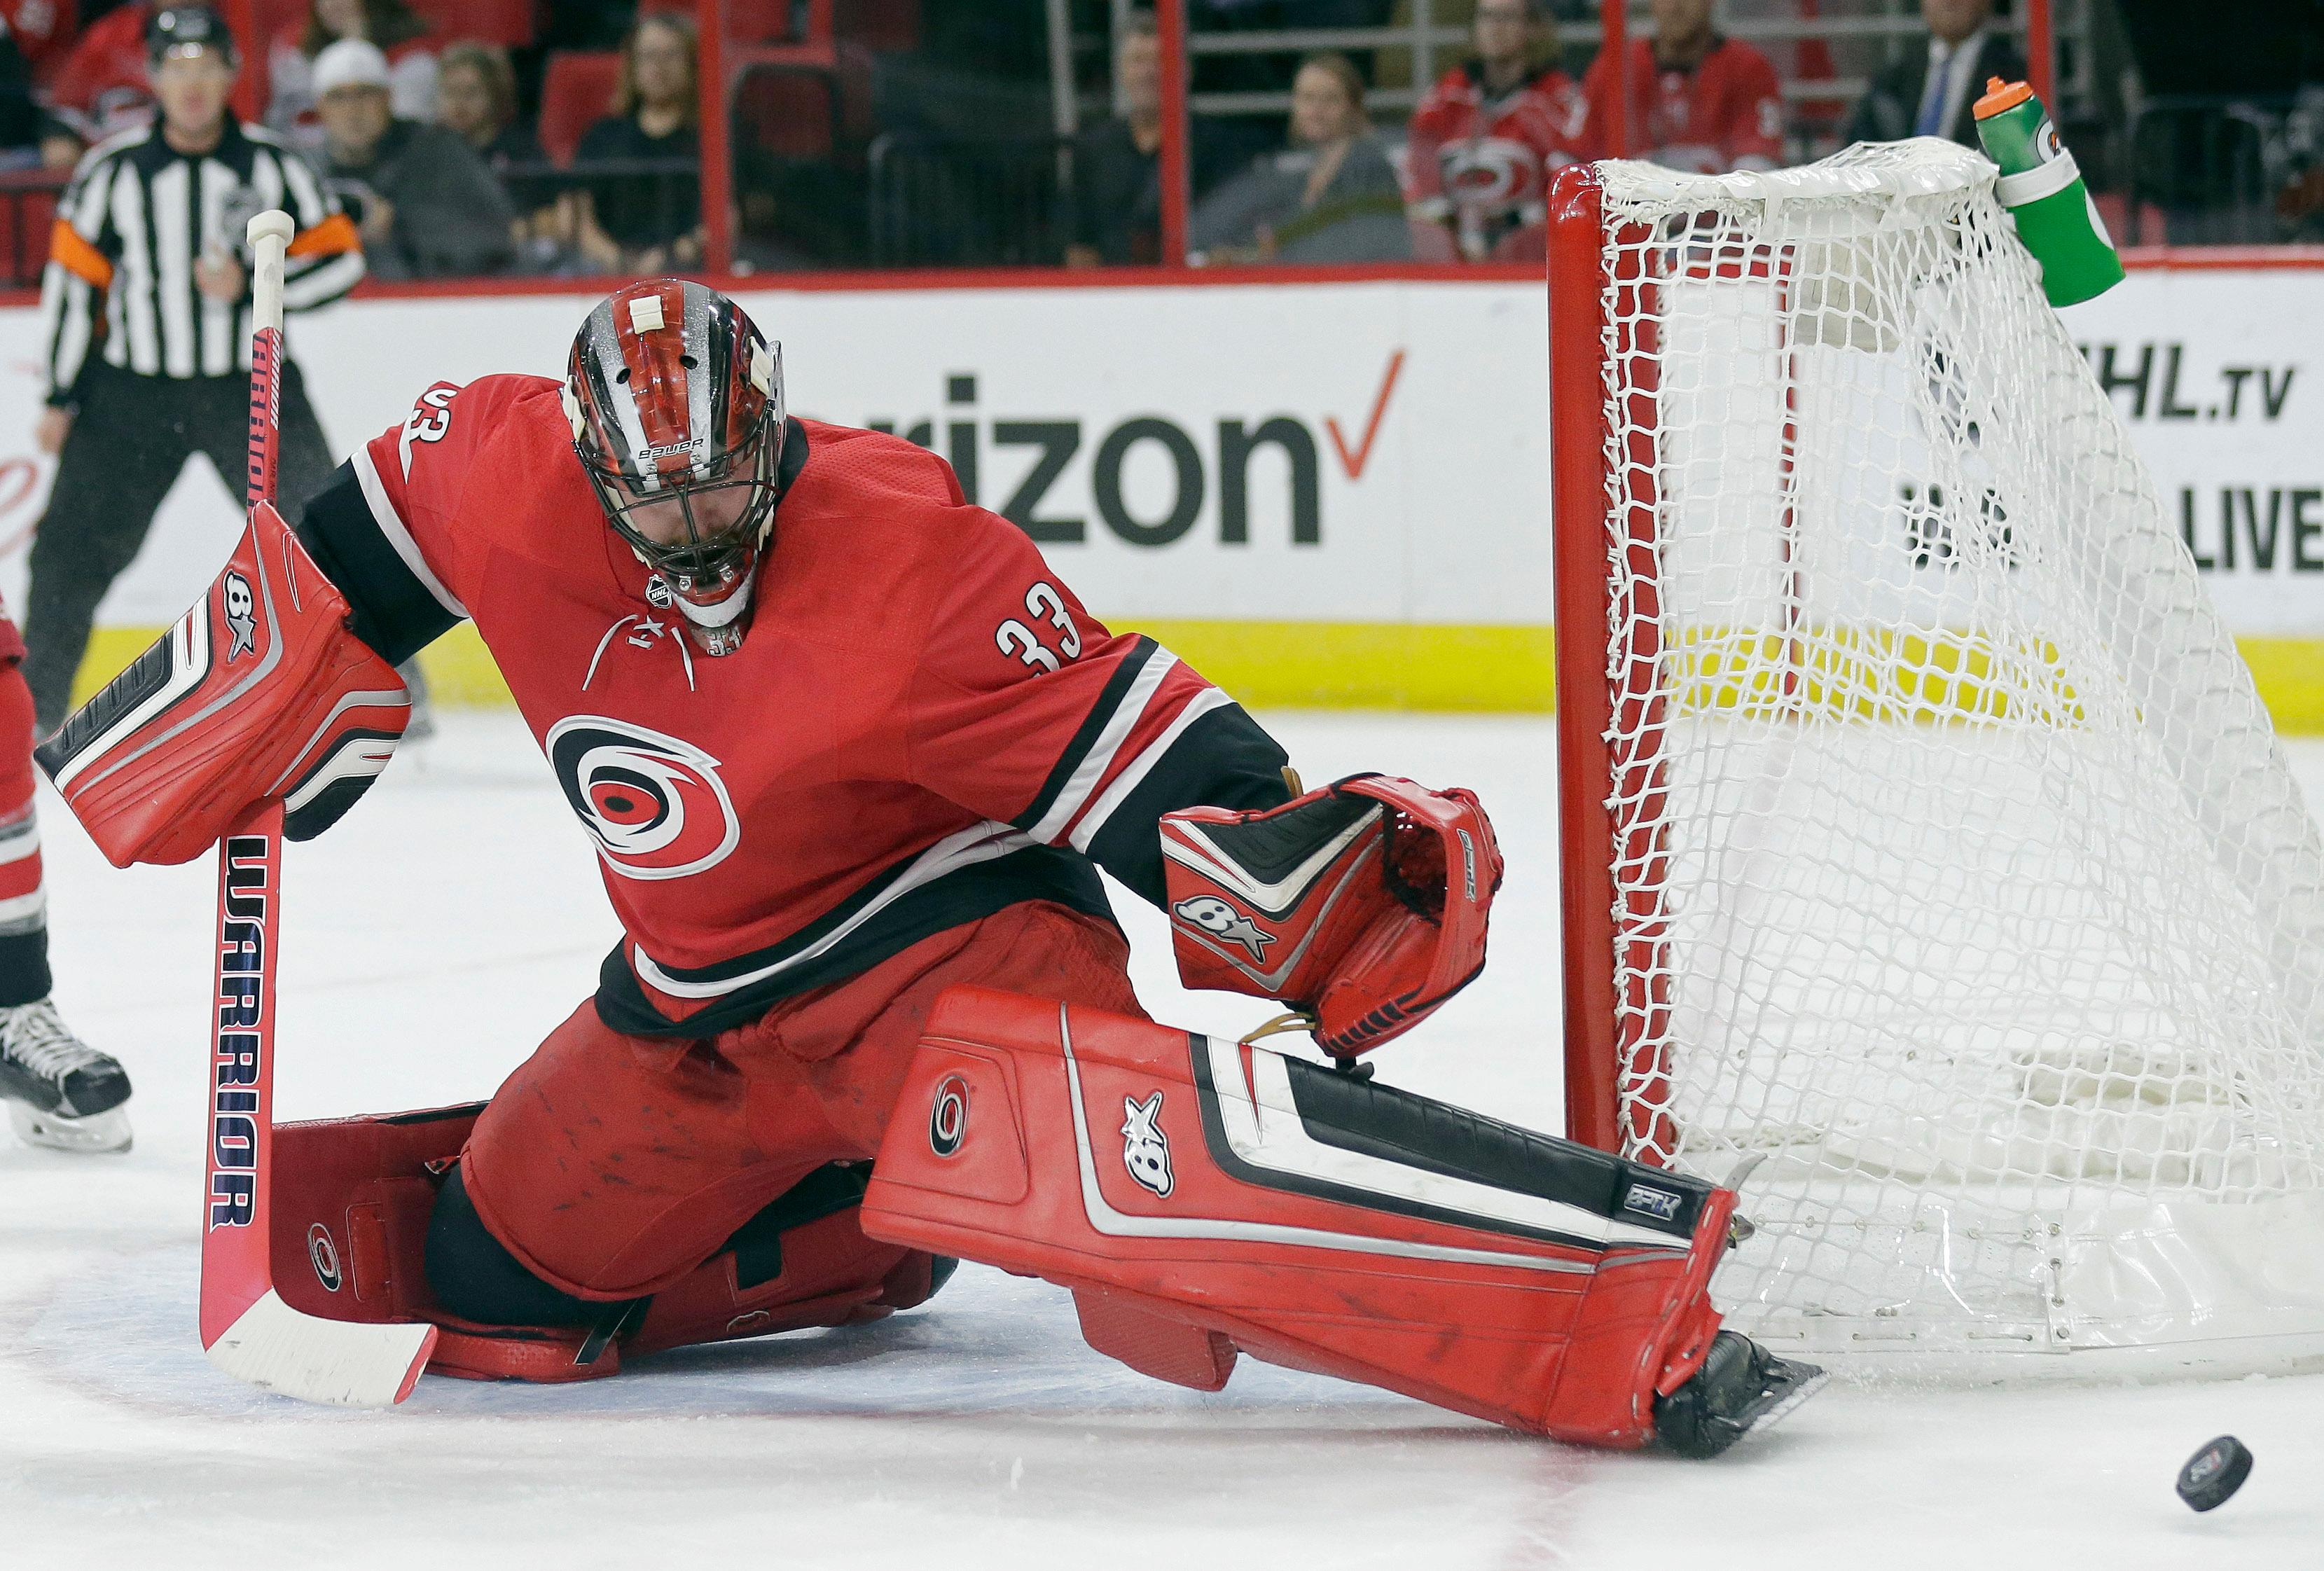 Carolina Hurricanes goalie Scott Darling (33) deflects the puck during the first period of an NHL hockey game against the Columbus Blue Jackets in Raleigh, N.C., Tuesday, Oct. 10, 2017. (AP Photo/Gerry Broome)